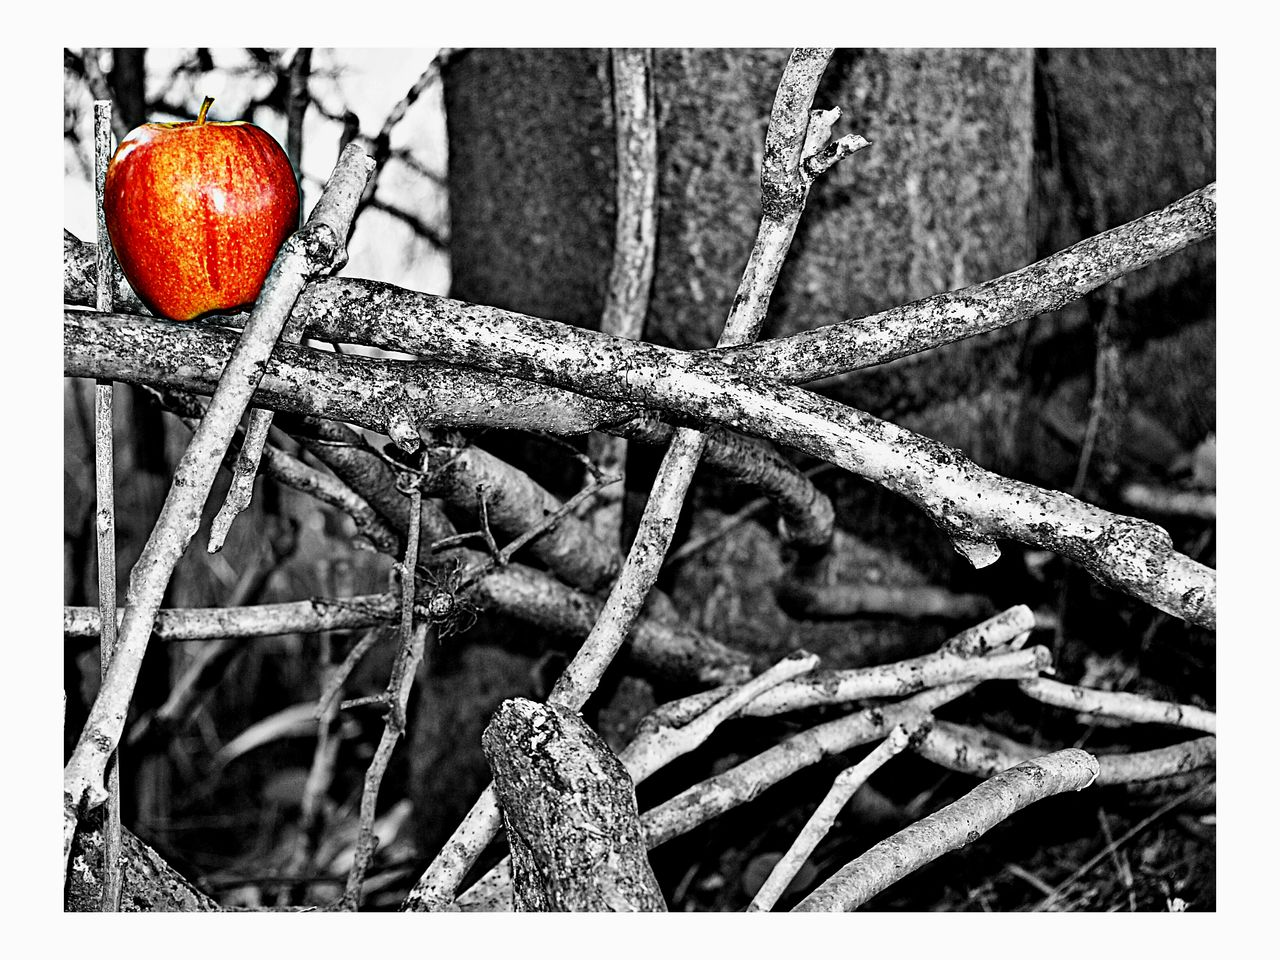 An Apple a Day Photo Collection - Find Me, Pick Me, Eat Me Enchantment Enticement Beauty In Simplicity Tangled Fruit Apple Twigs Tangled In Wall Art